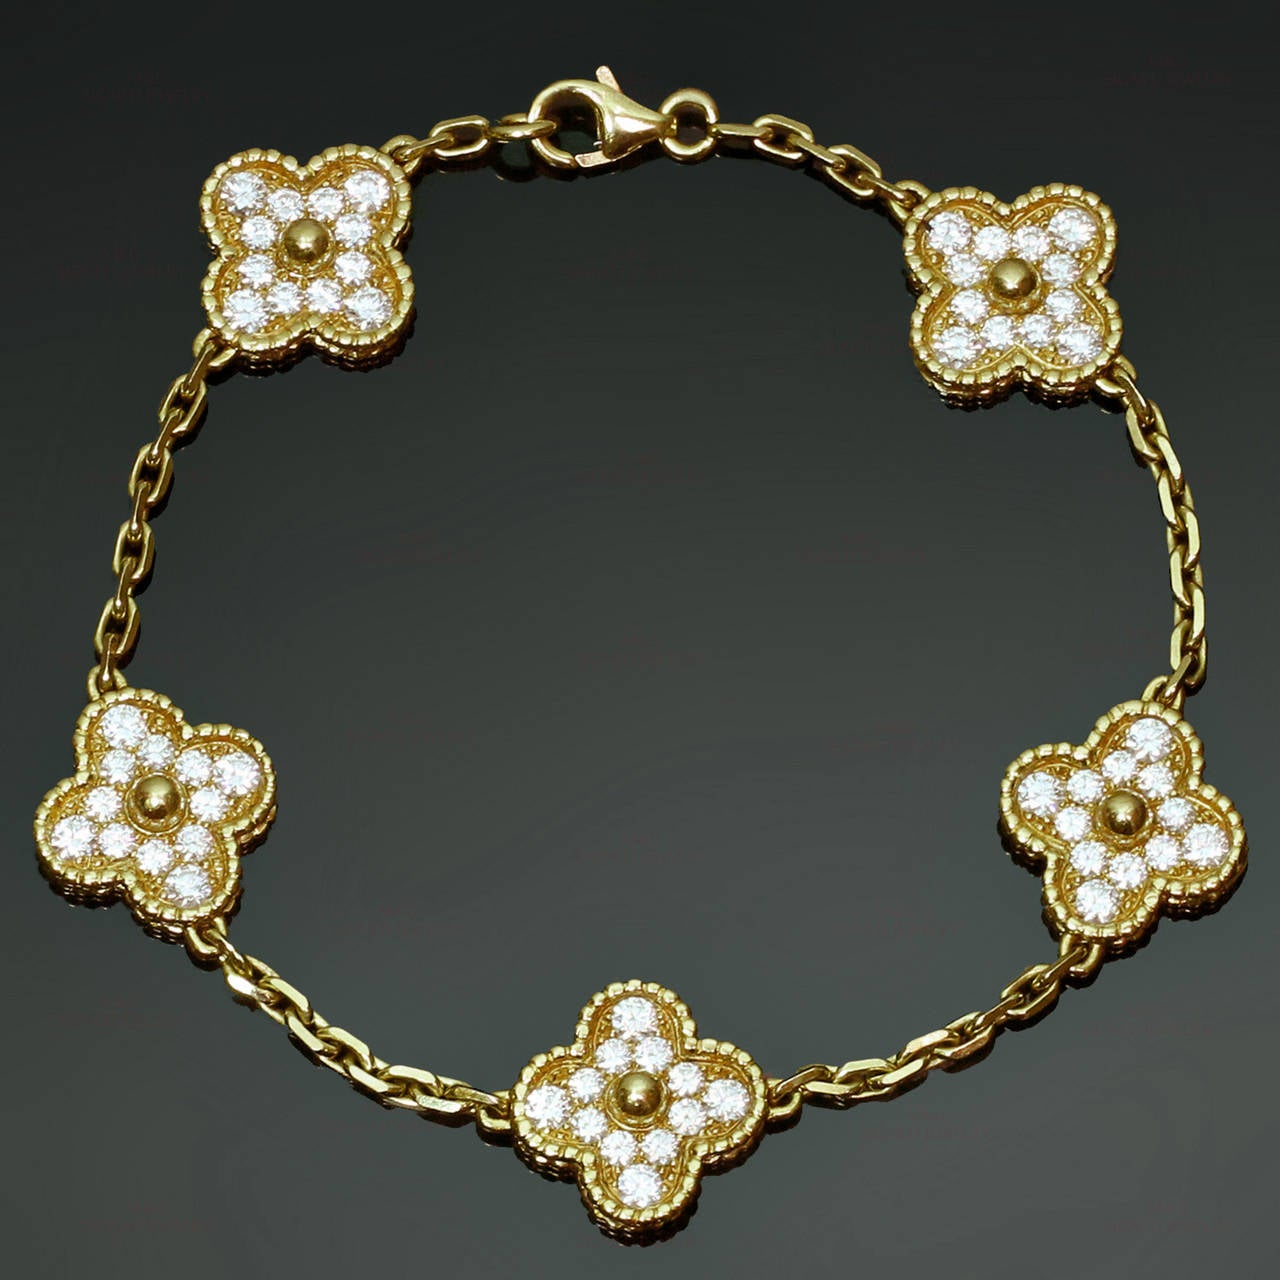 This classic Van Cleef & Arpels Alhambra bracelet features 5 lucky clover charms crafted in 18k yellow gold and set with brilliant-cut round diamonds of an estimated 1.80 carats. Measurements: 0.55